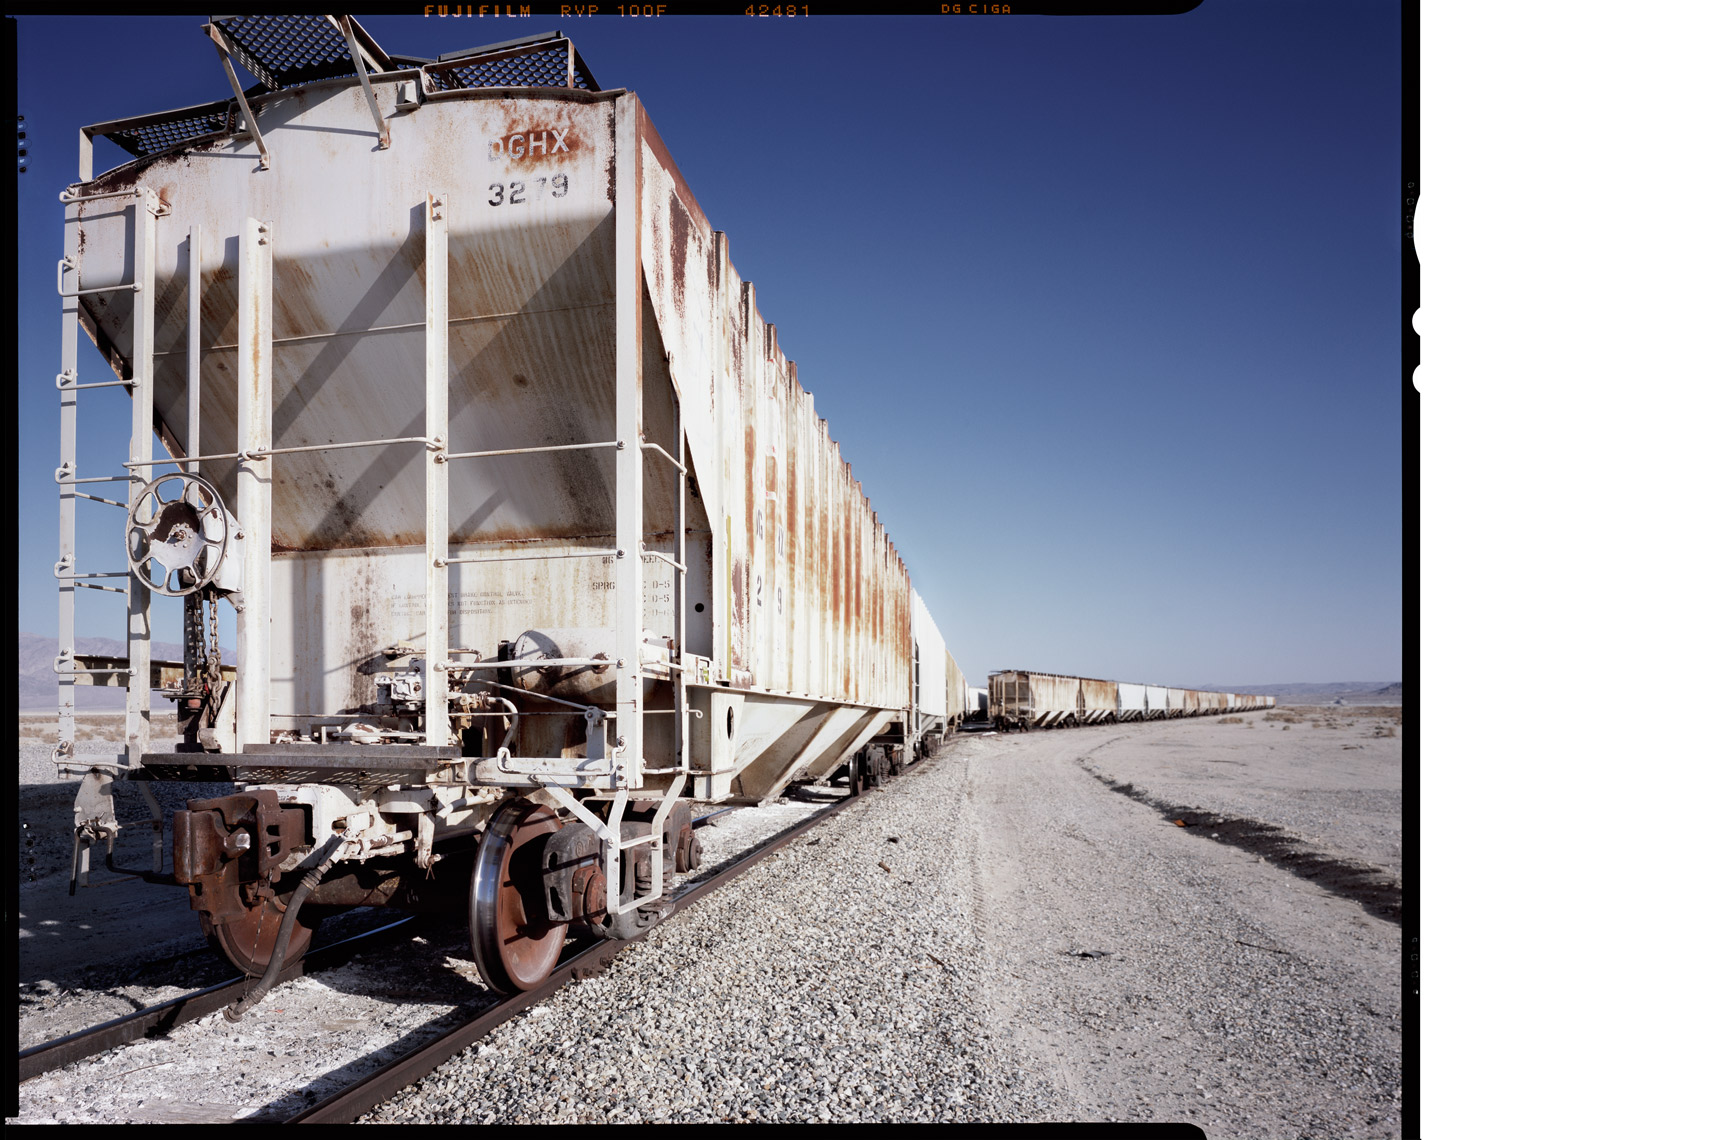 4x5_Train_SearlessLake_WEB.jpg